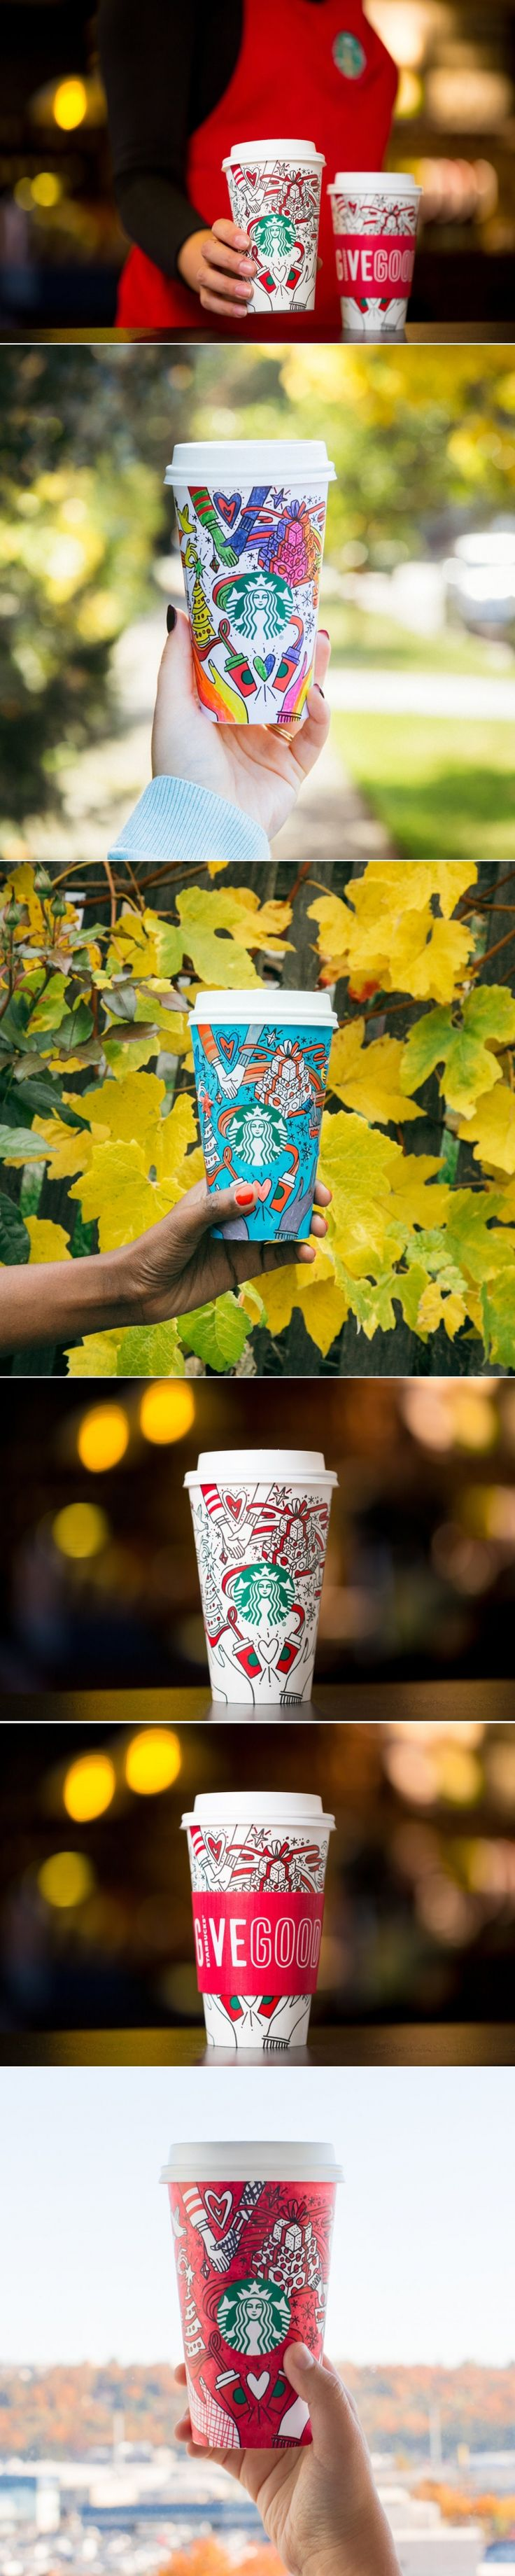 The Starbucks Holiday Cup is Here, and You Can Make it One-of-a-Kind — The Dieline | Packaging & Branding Design & Innovation News